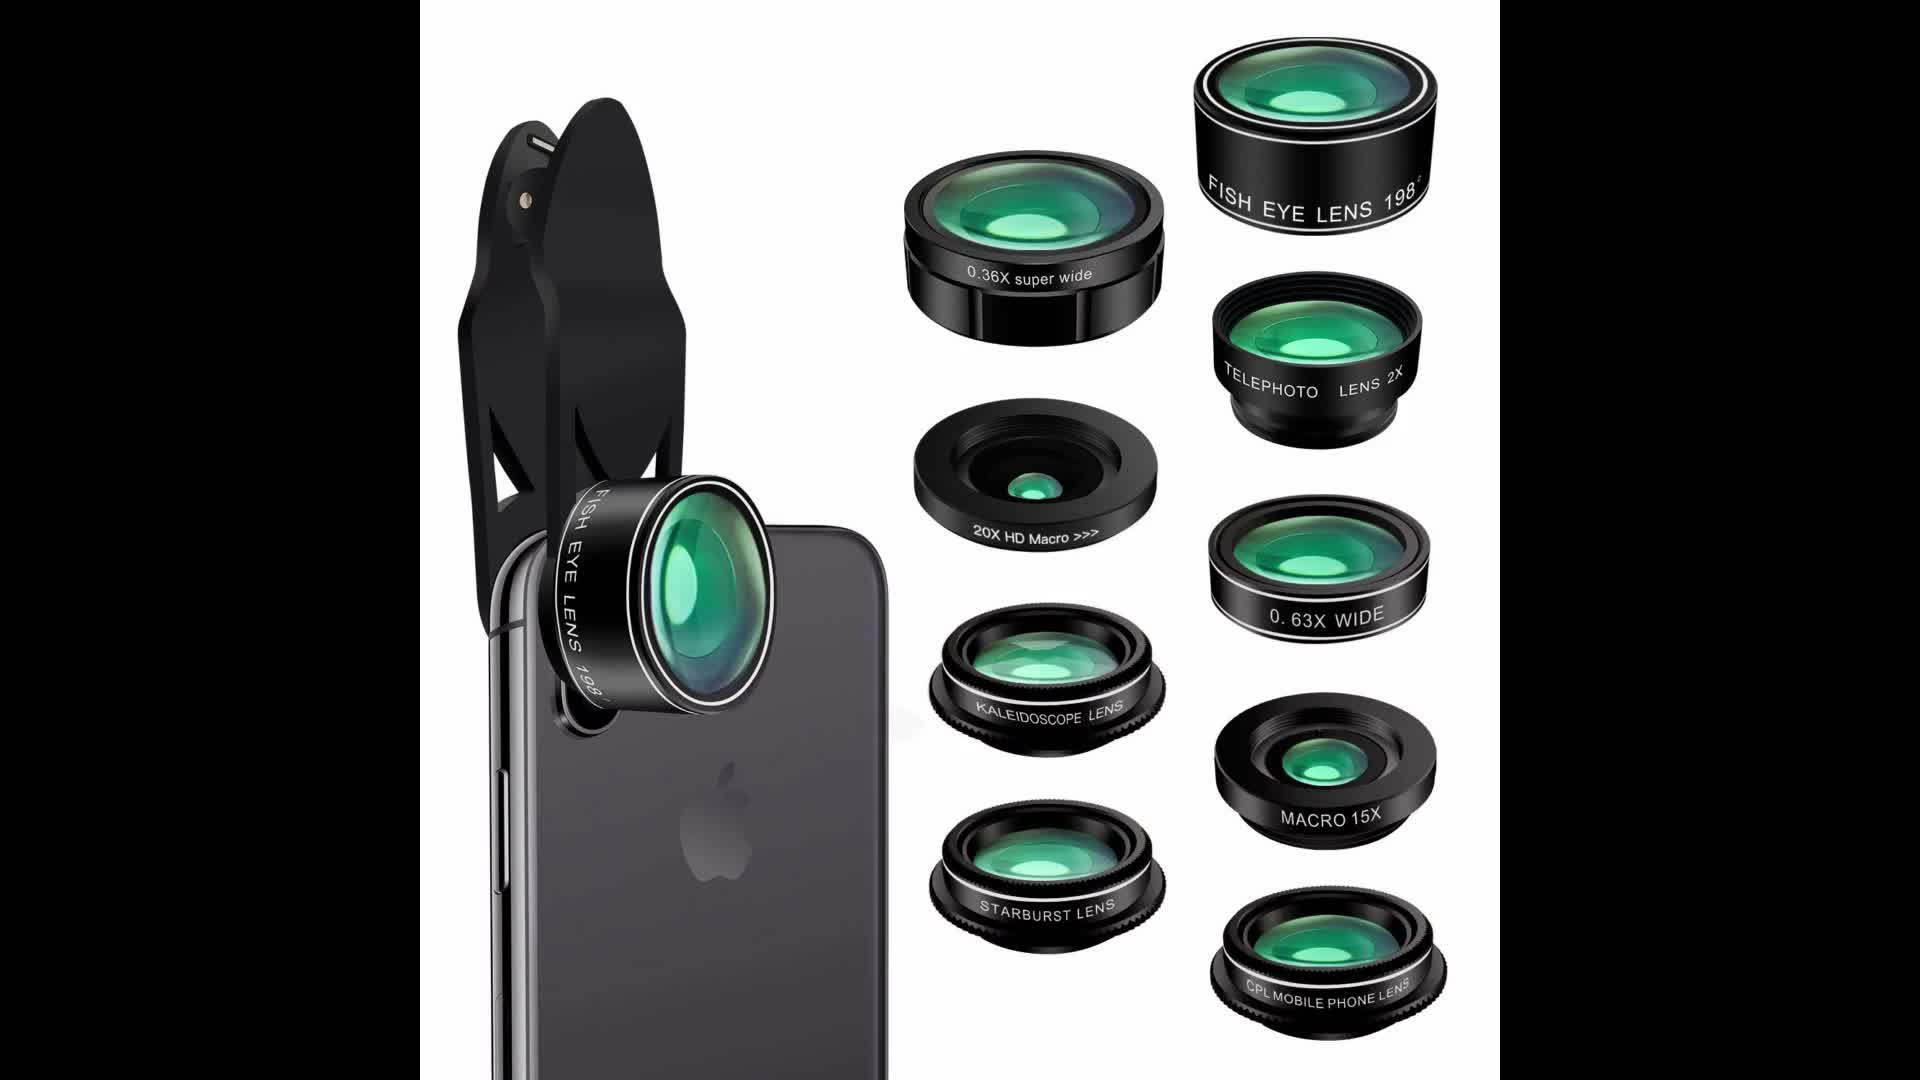 Aike global optical kaleidoscope lens for mobile phone camera lens  universal 7 in 1 lens kit